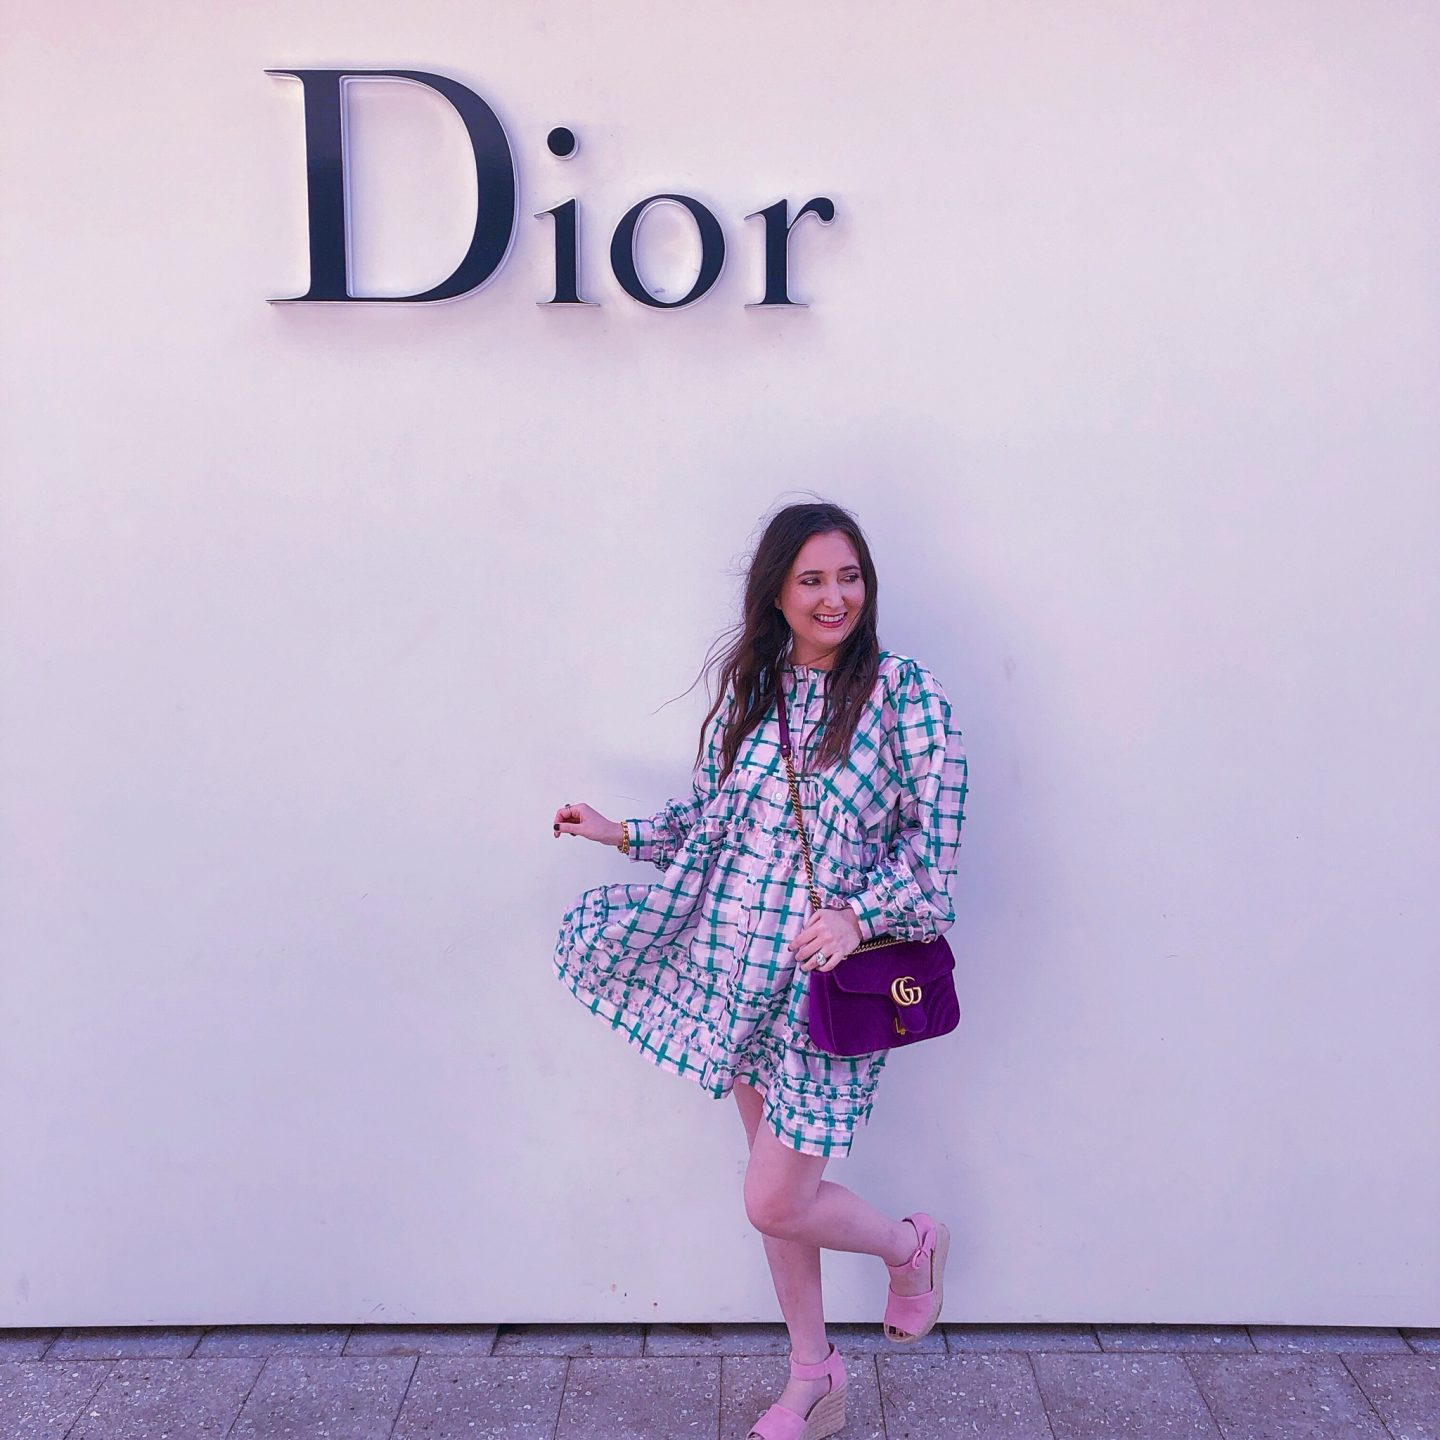 Dior Cafe Miami, cafe dior, cafe dior miami, what cafe dior miami looks like, dior latte, sister jane smock dress, sister jane dress, pink marc fisher wedges, pink marc fisher alina wedges, purple velvet gucci marmont, gucci marmont velvet, dior store, dior miami store